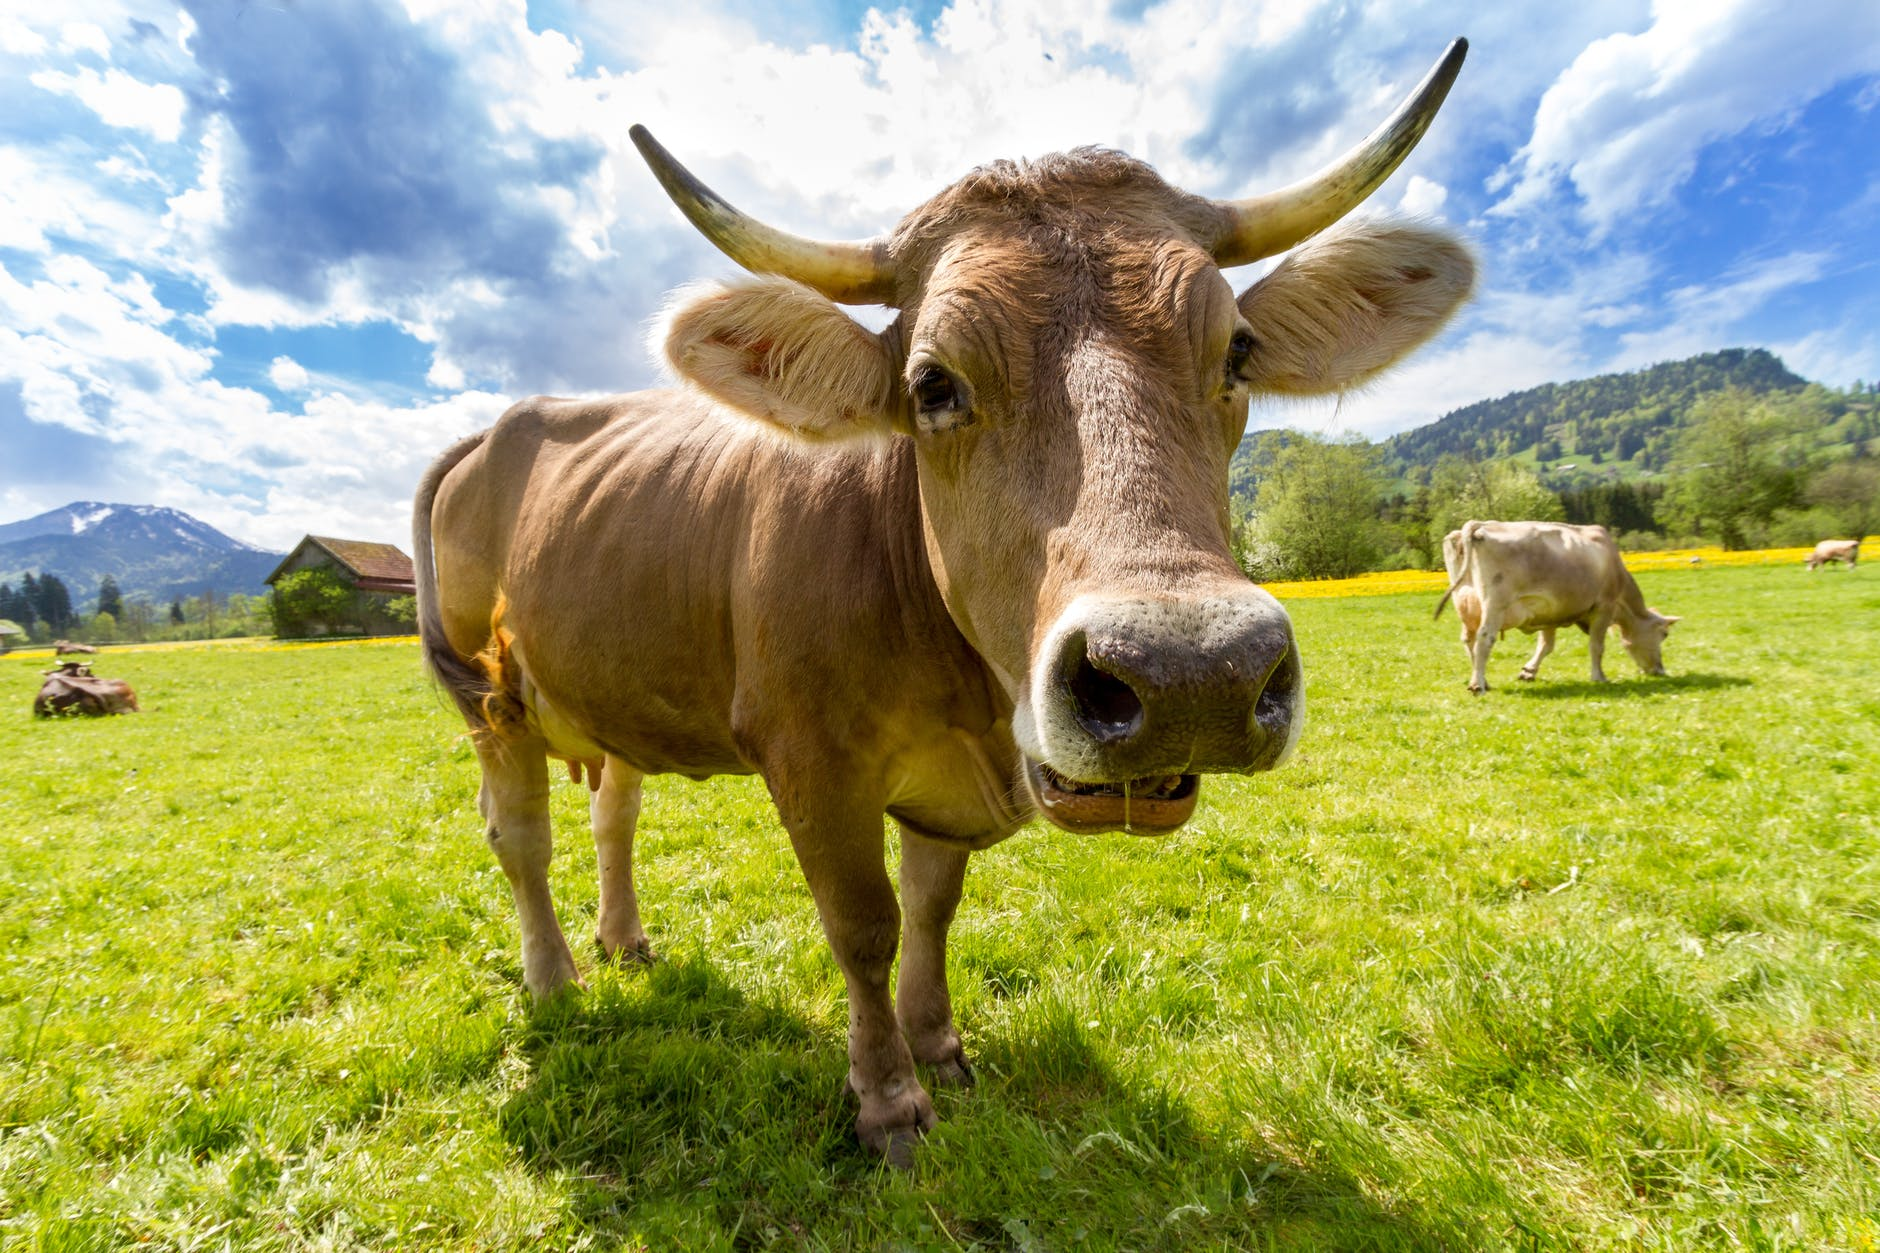 A cow produces 200 times more gas a day than a person.